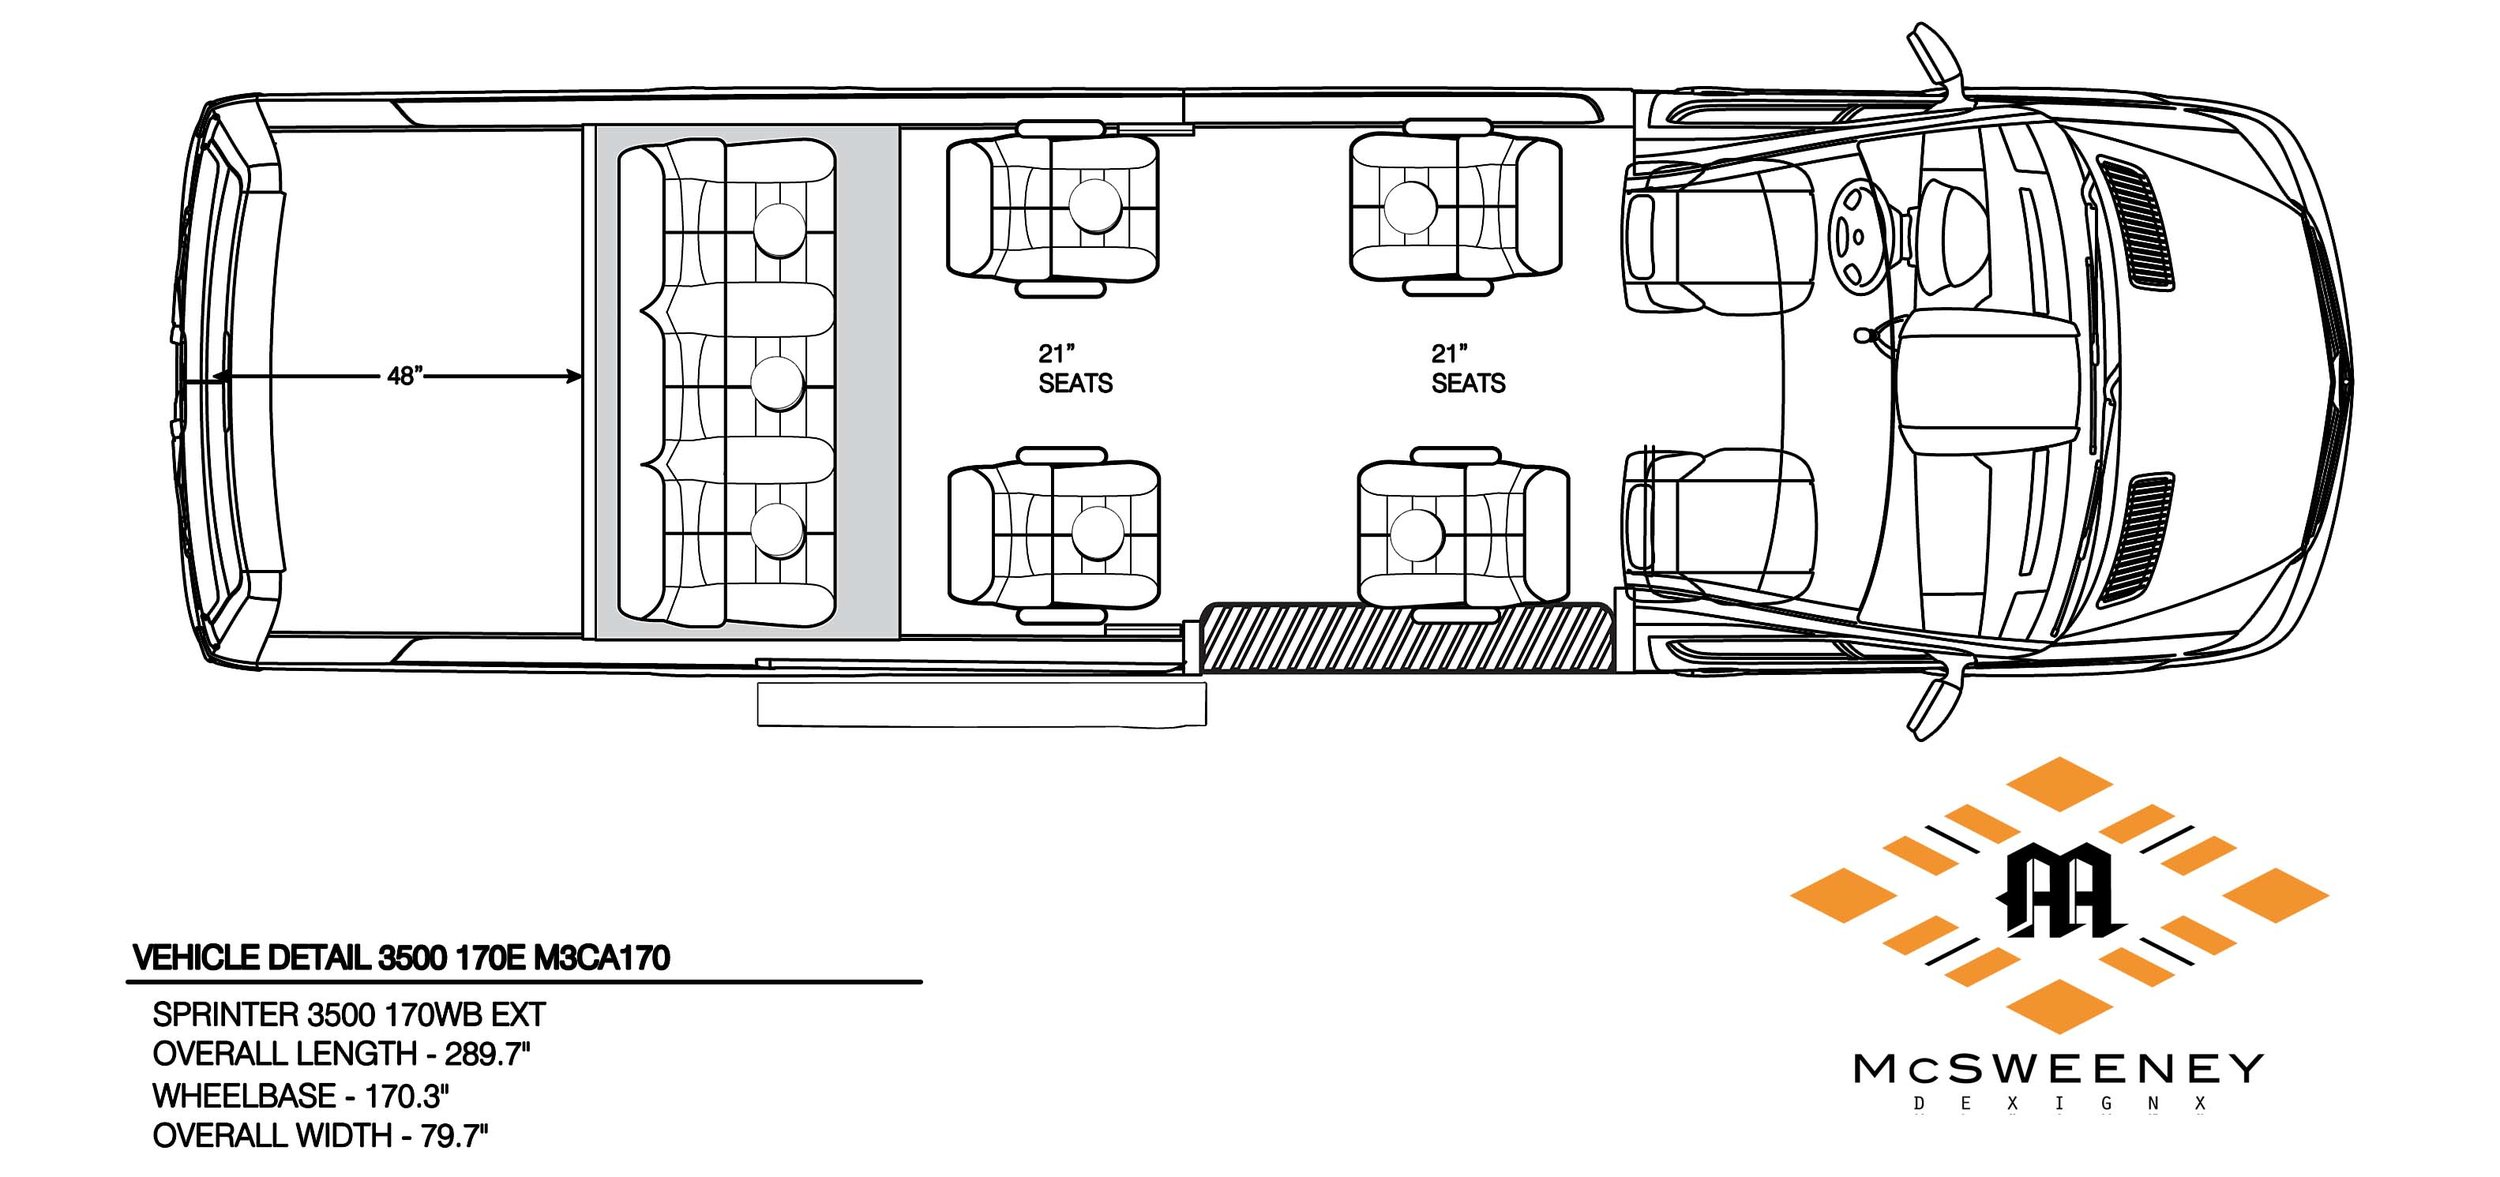 Sprinter Layout.jpg